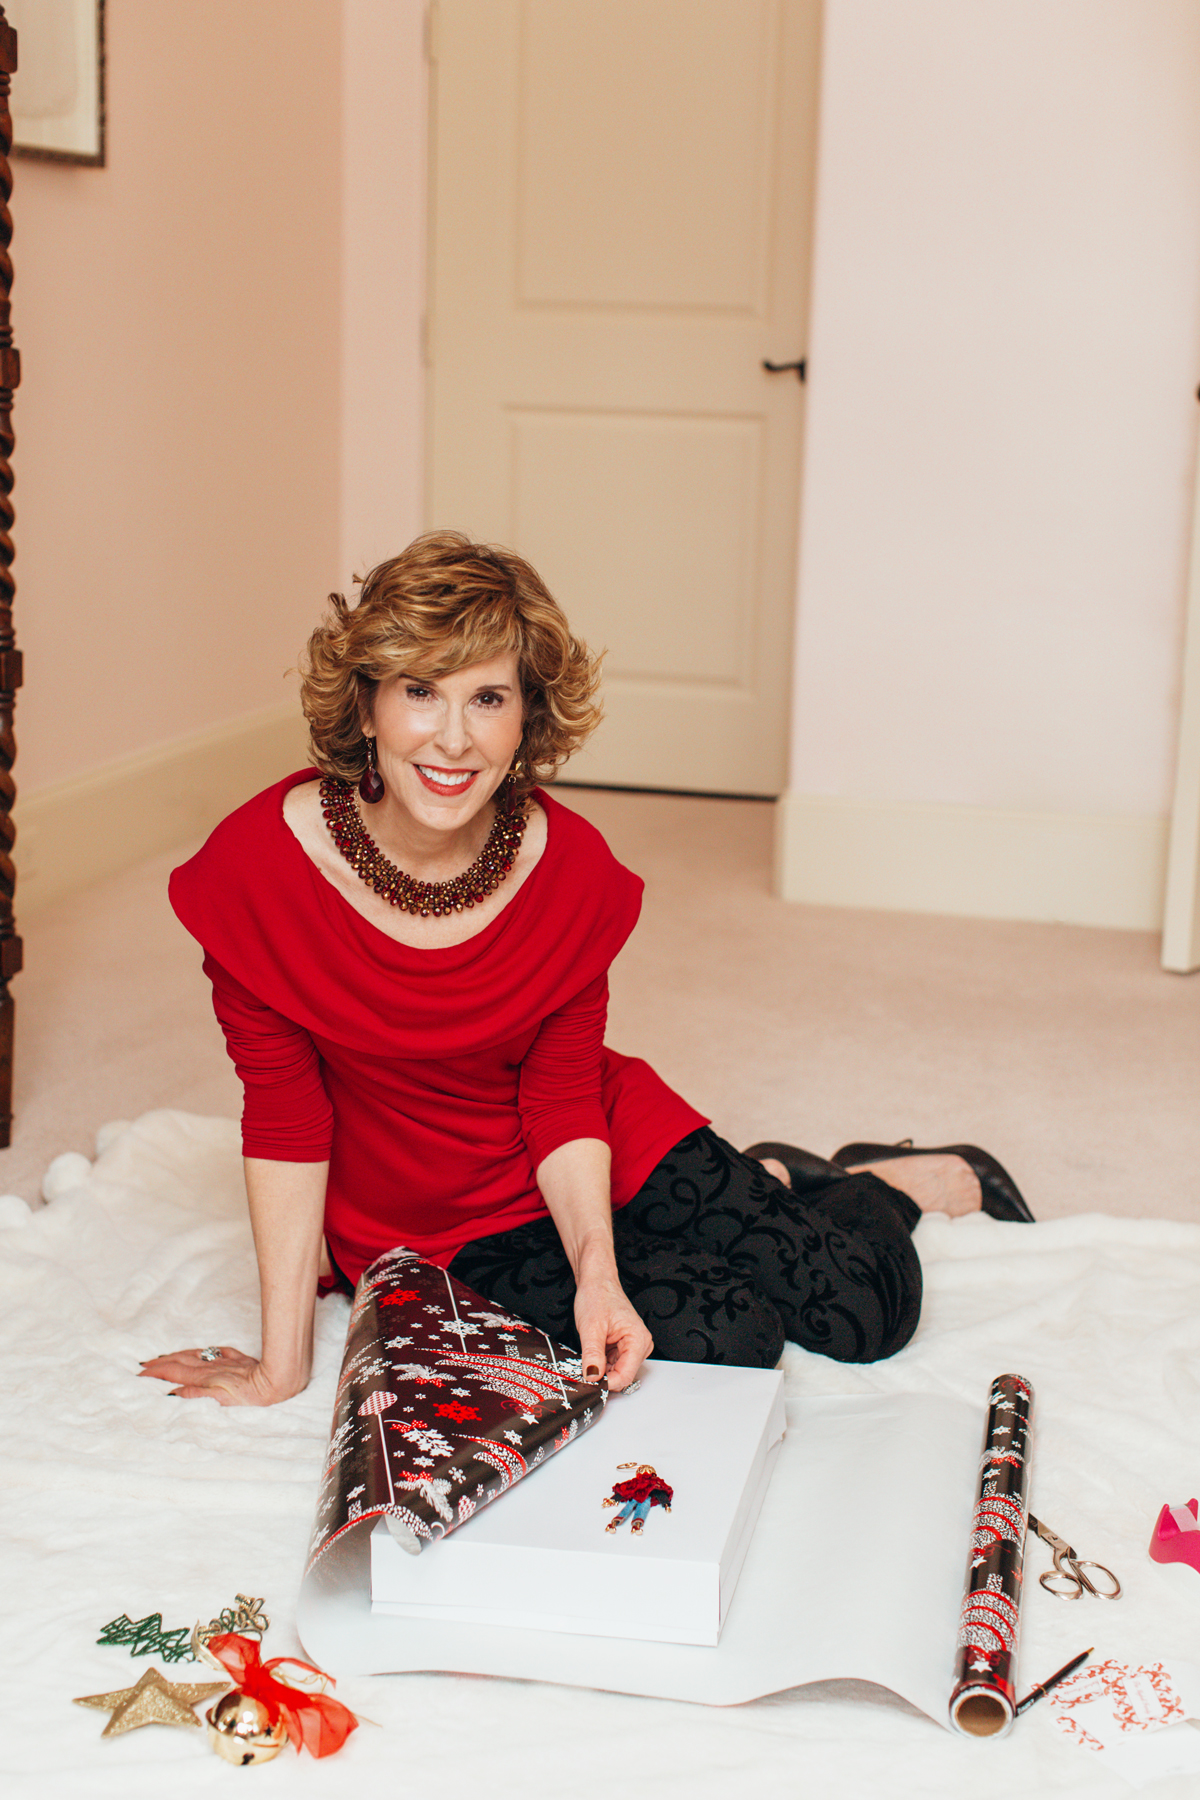 woman sitting on floor wearing red top and black pants from chicos wrapping a gift